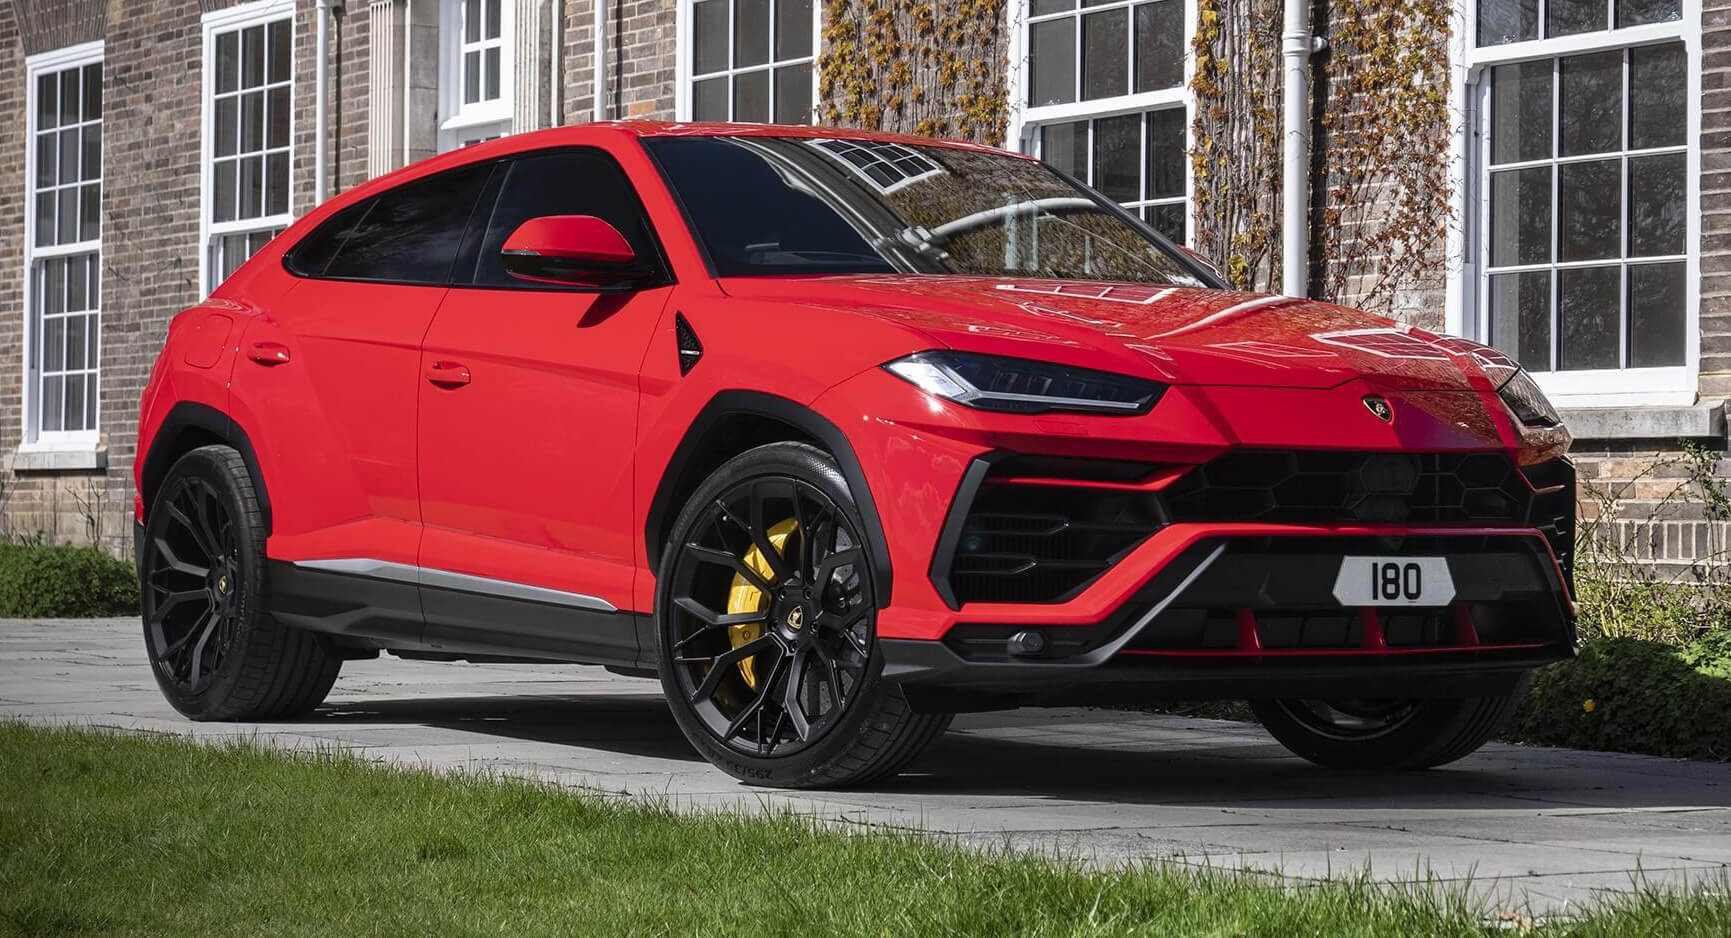 Kahn Would Sell You This Lamborghini Urus For 180k 234k Carscoops